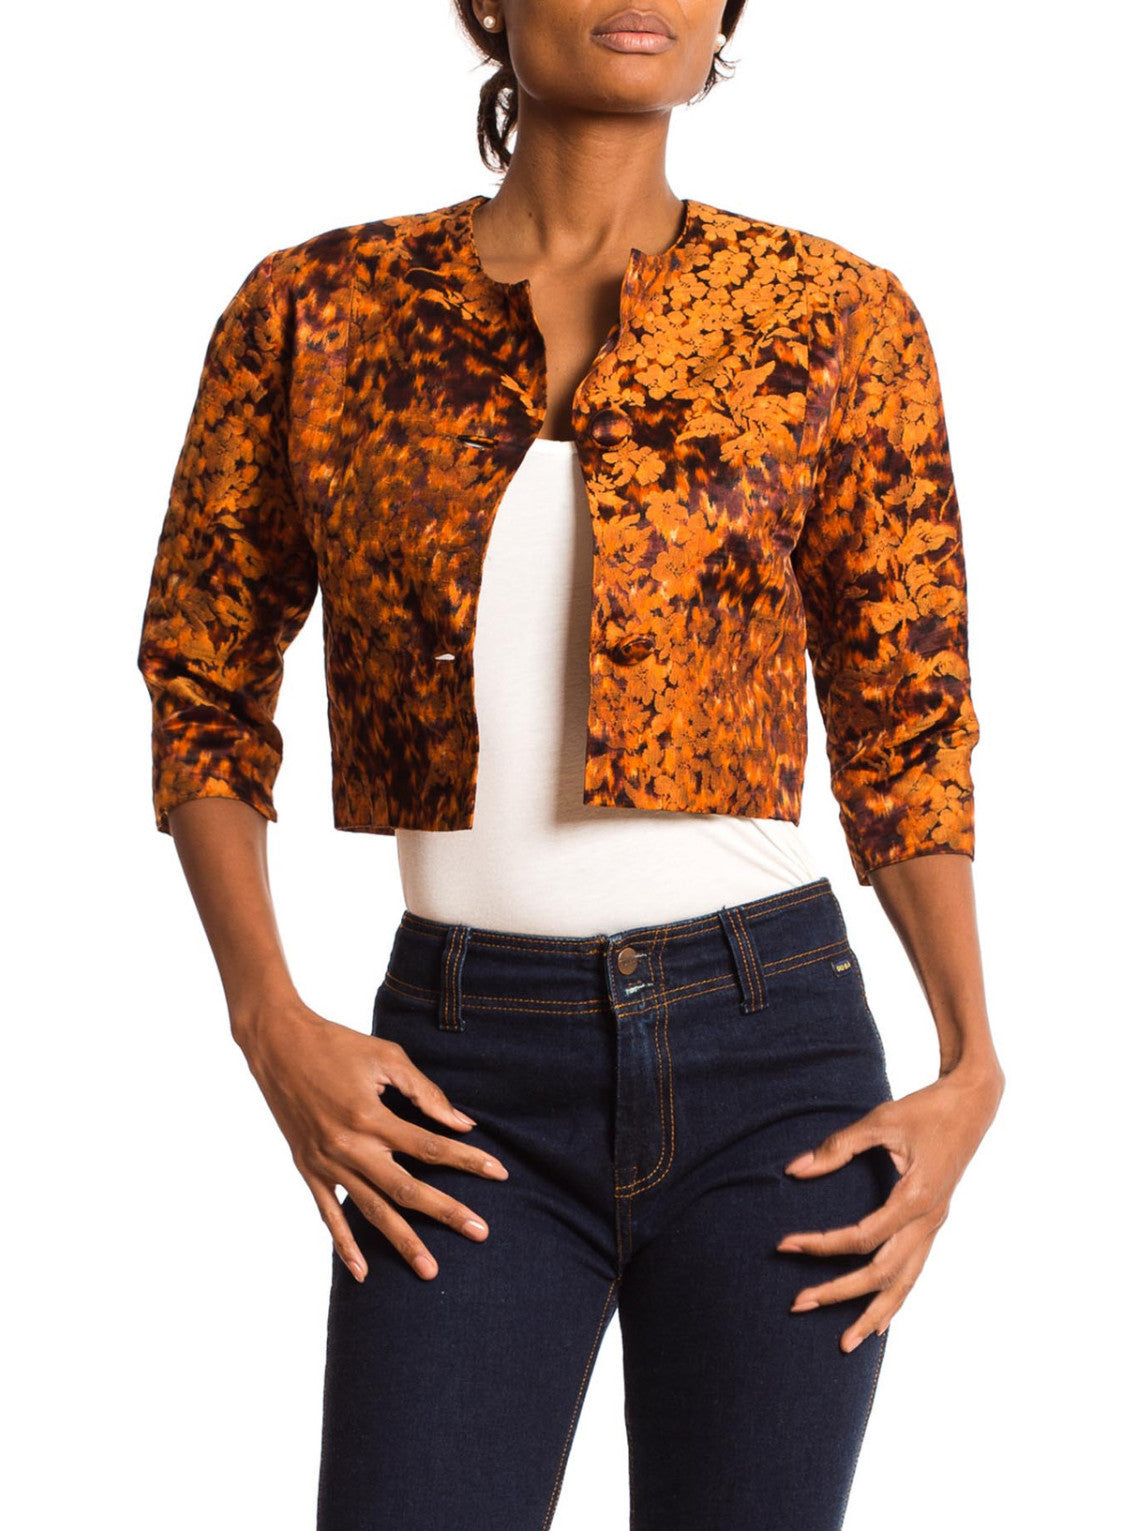 1950S Burnt Orange Silk Jacquard Hand Woven Ikat Floral Cropped Jacket